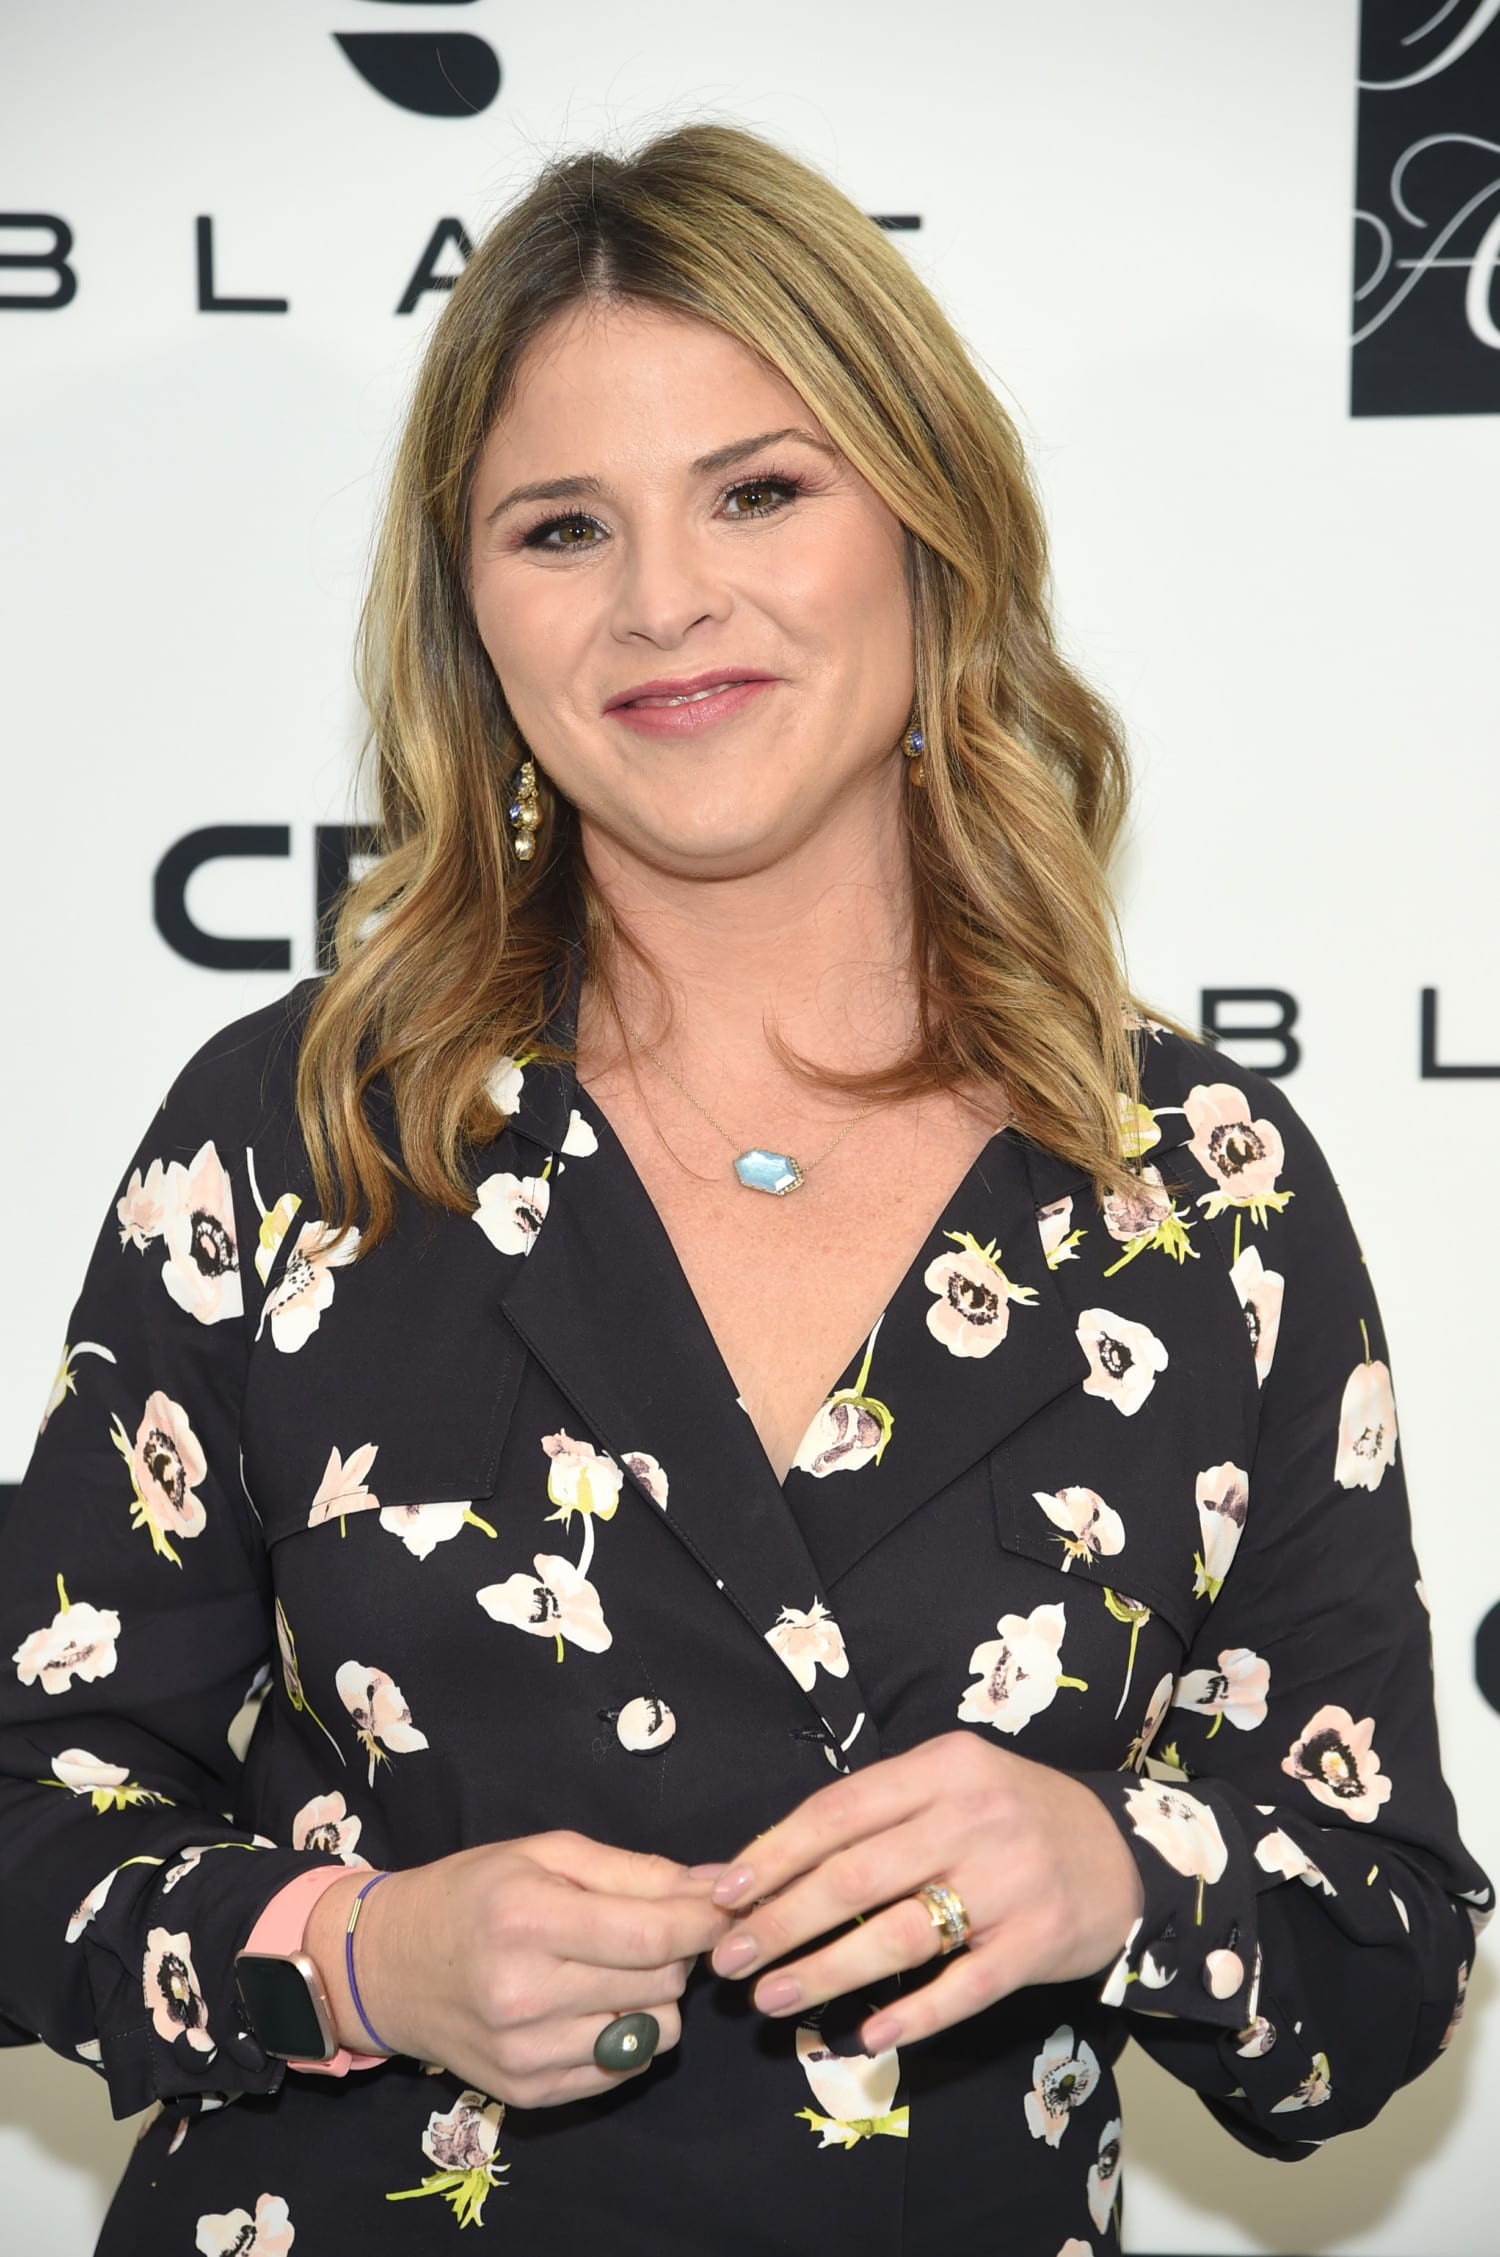 jenna bush hager photo